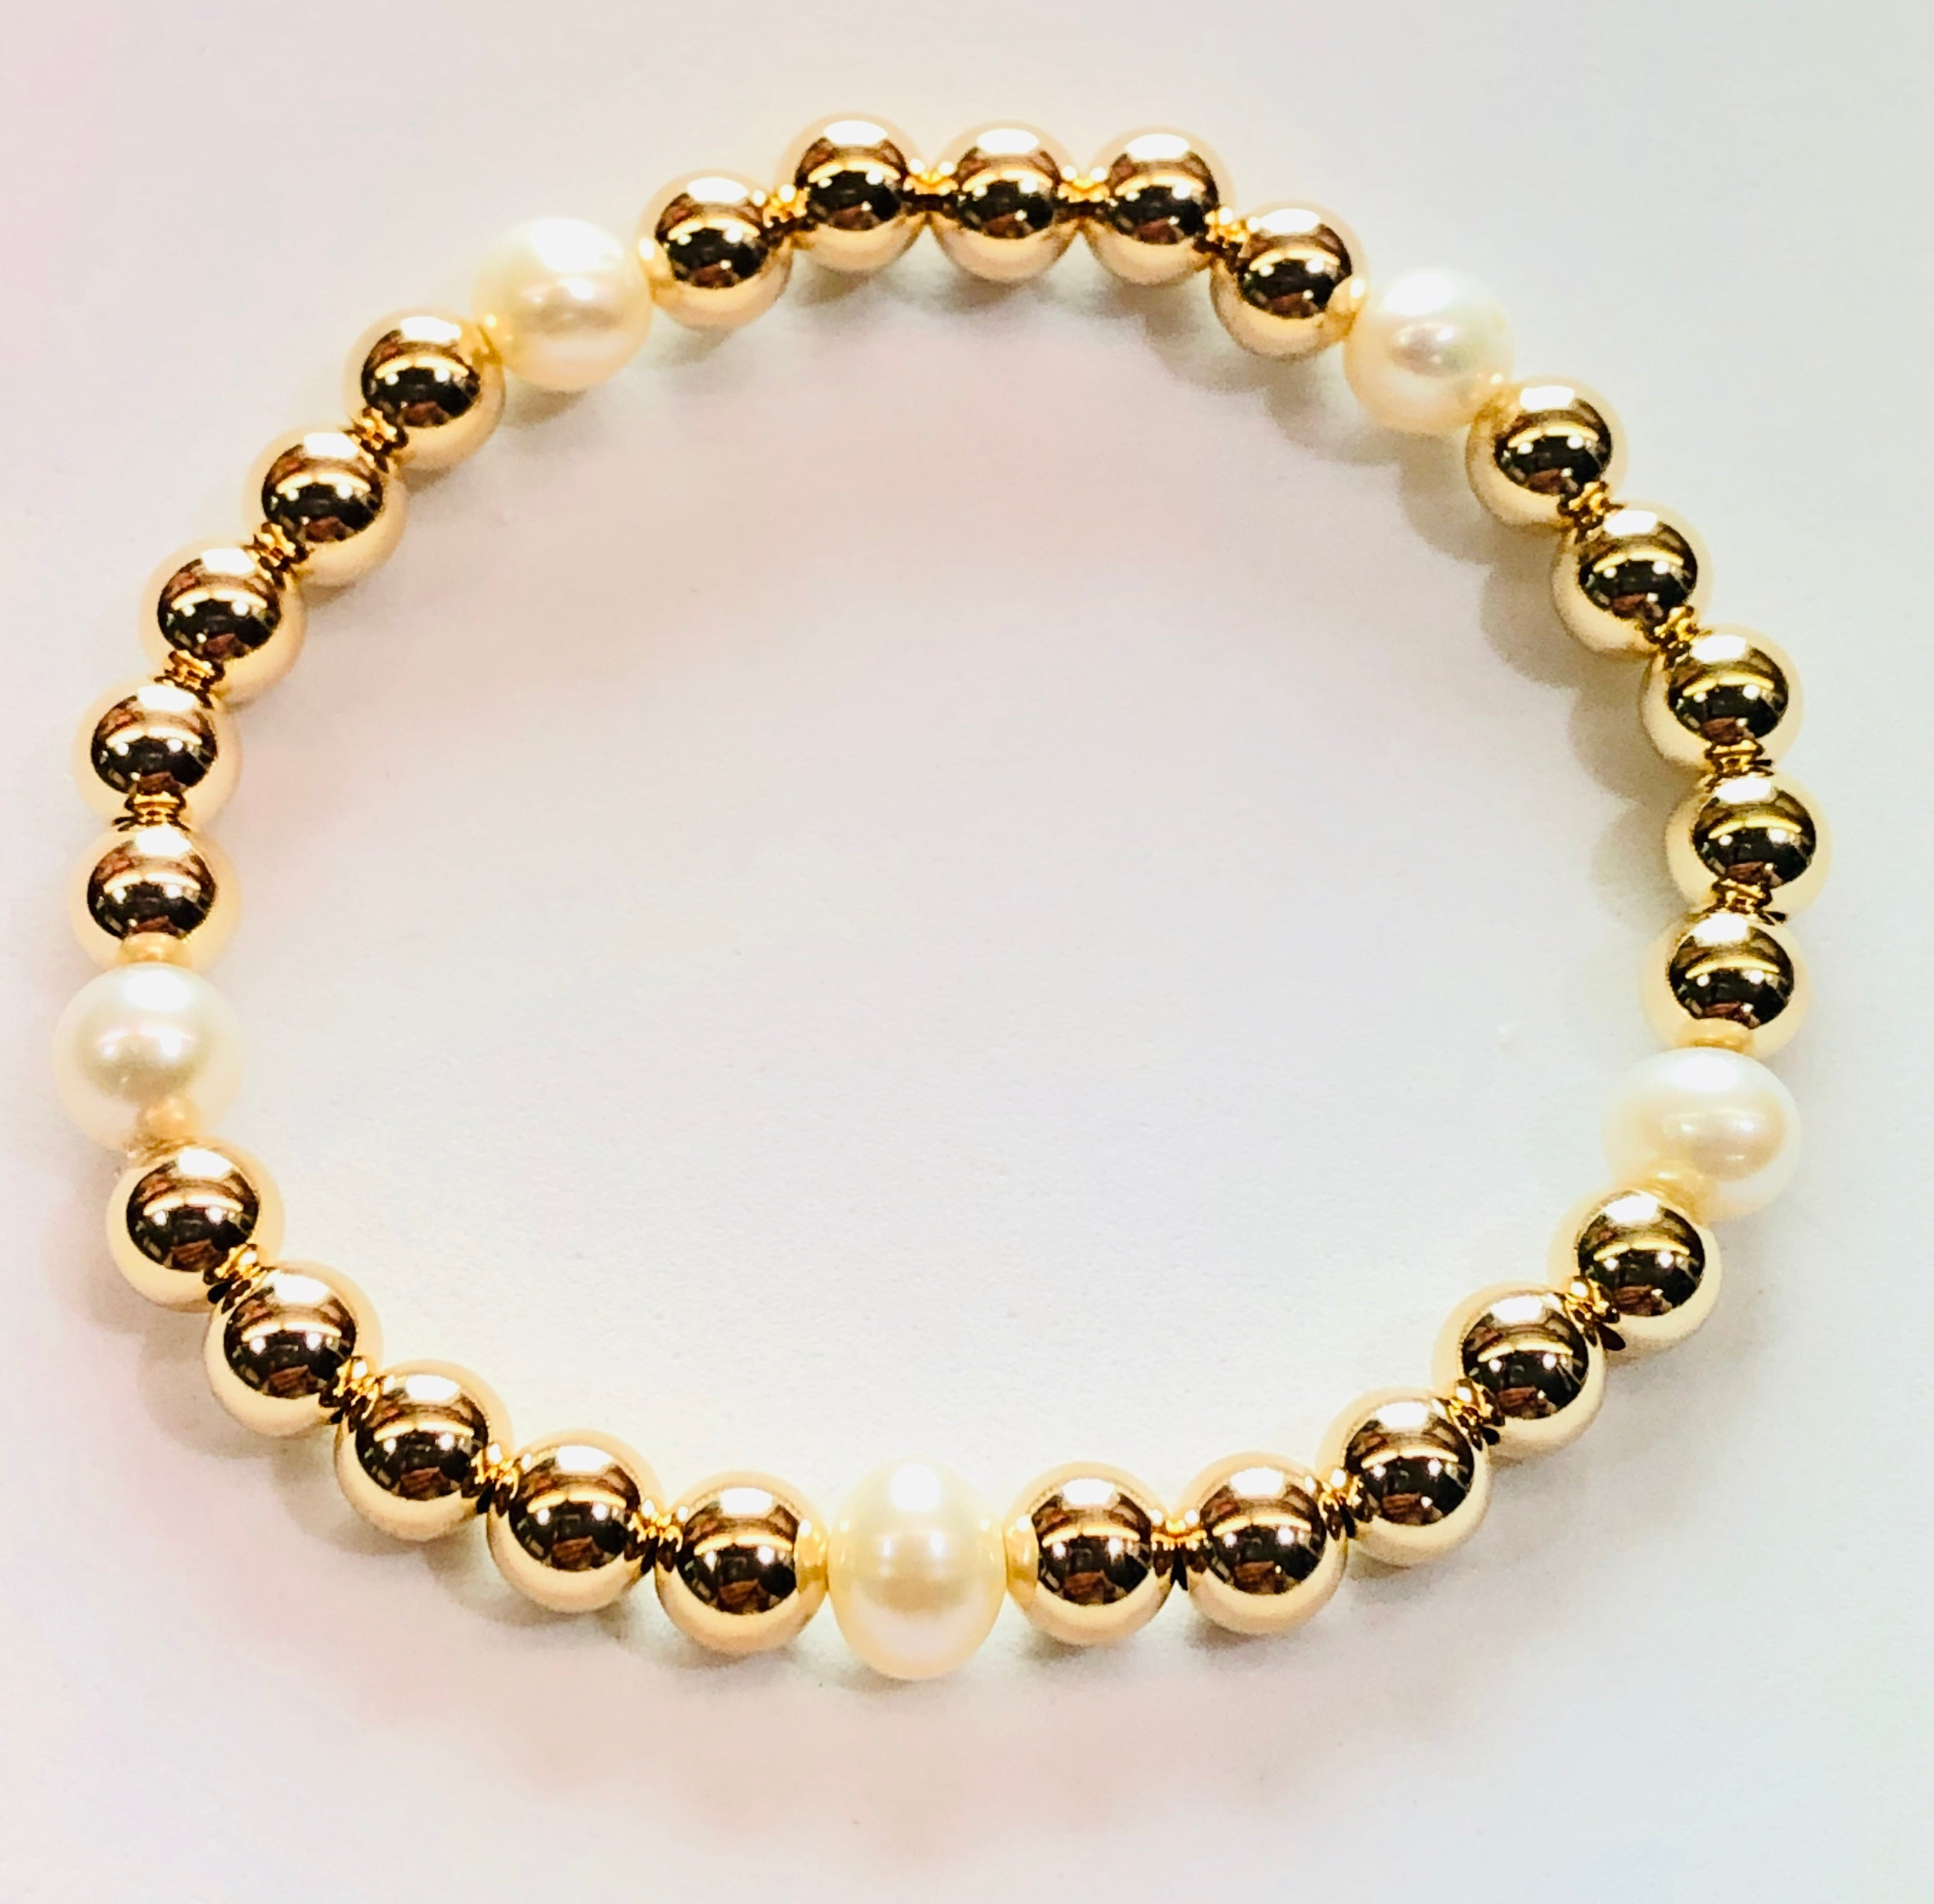 6mm 14kt Gold Filled Bead Bracelet with 5 6mm Fresh Water Pearls